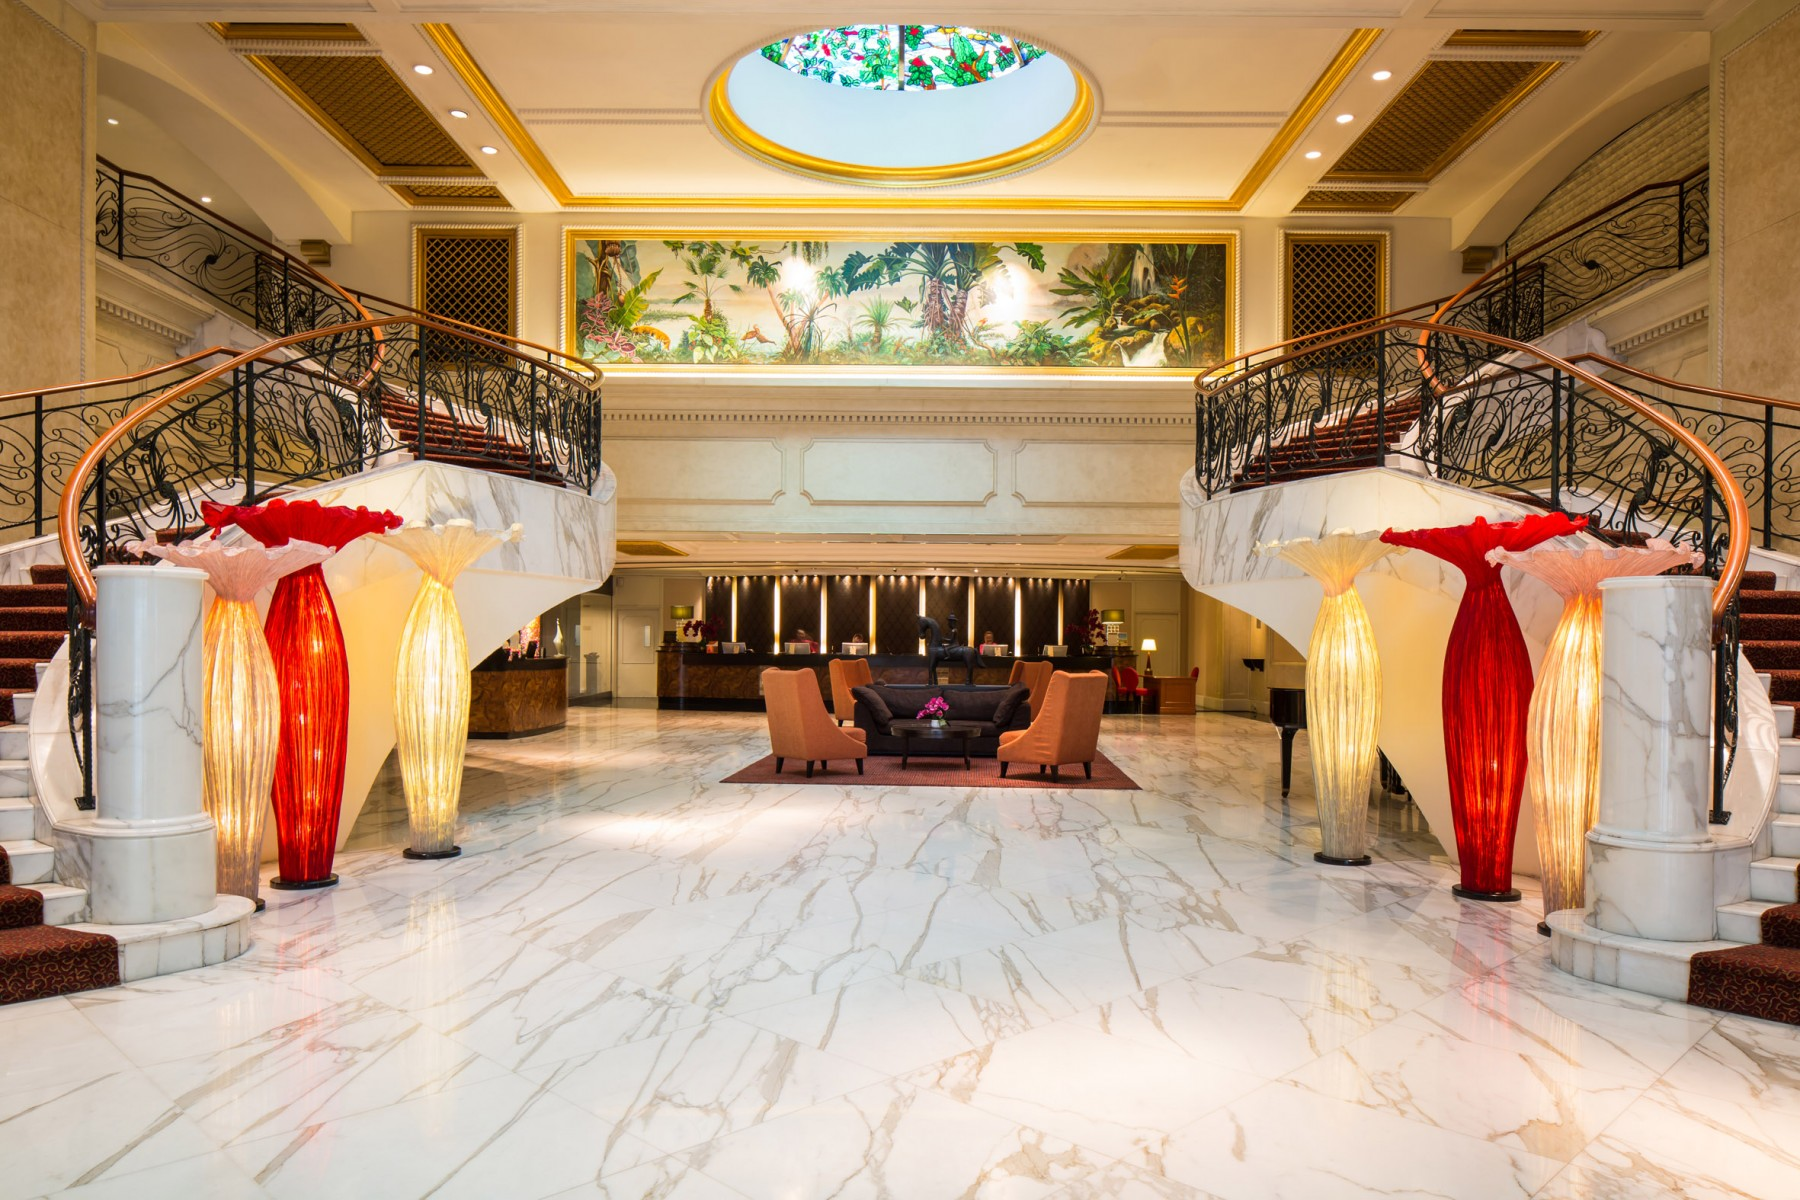 Royal Plaza On Scotts In Singapore Book A Hotel Orchard Road